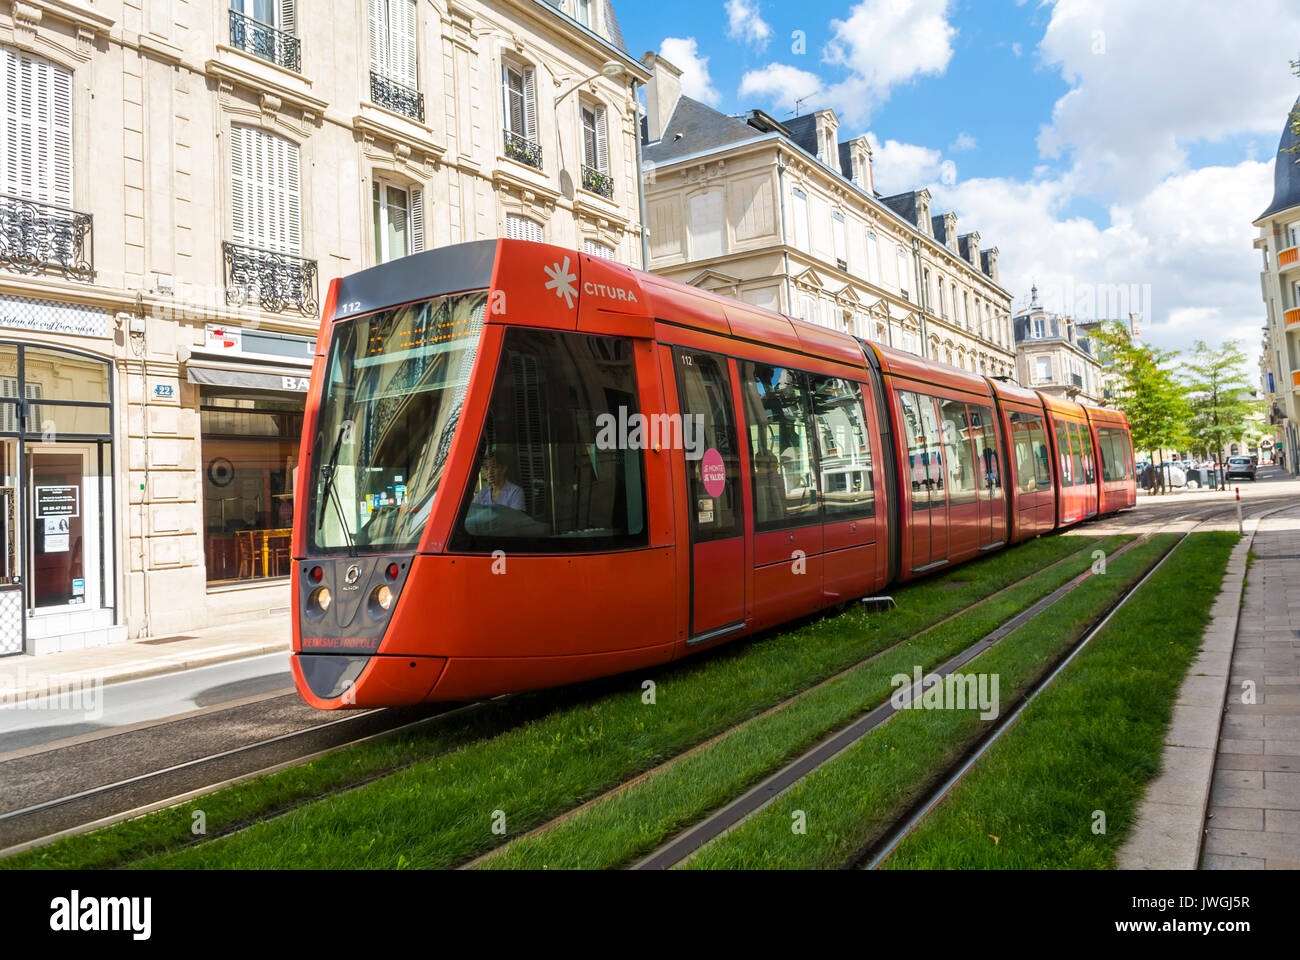 Reims, France, Public Tramway on Tracks on Street - Stock Image